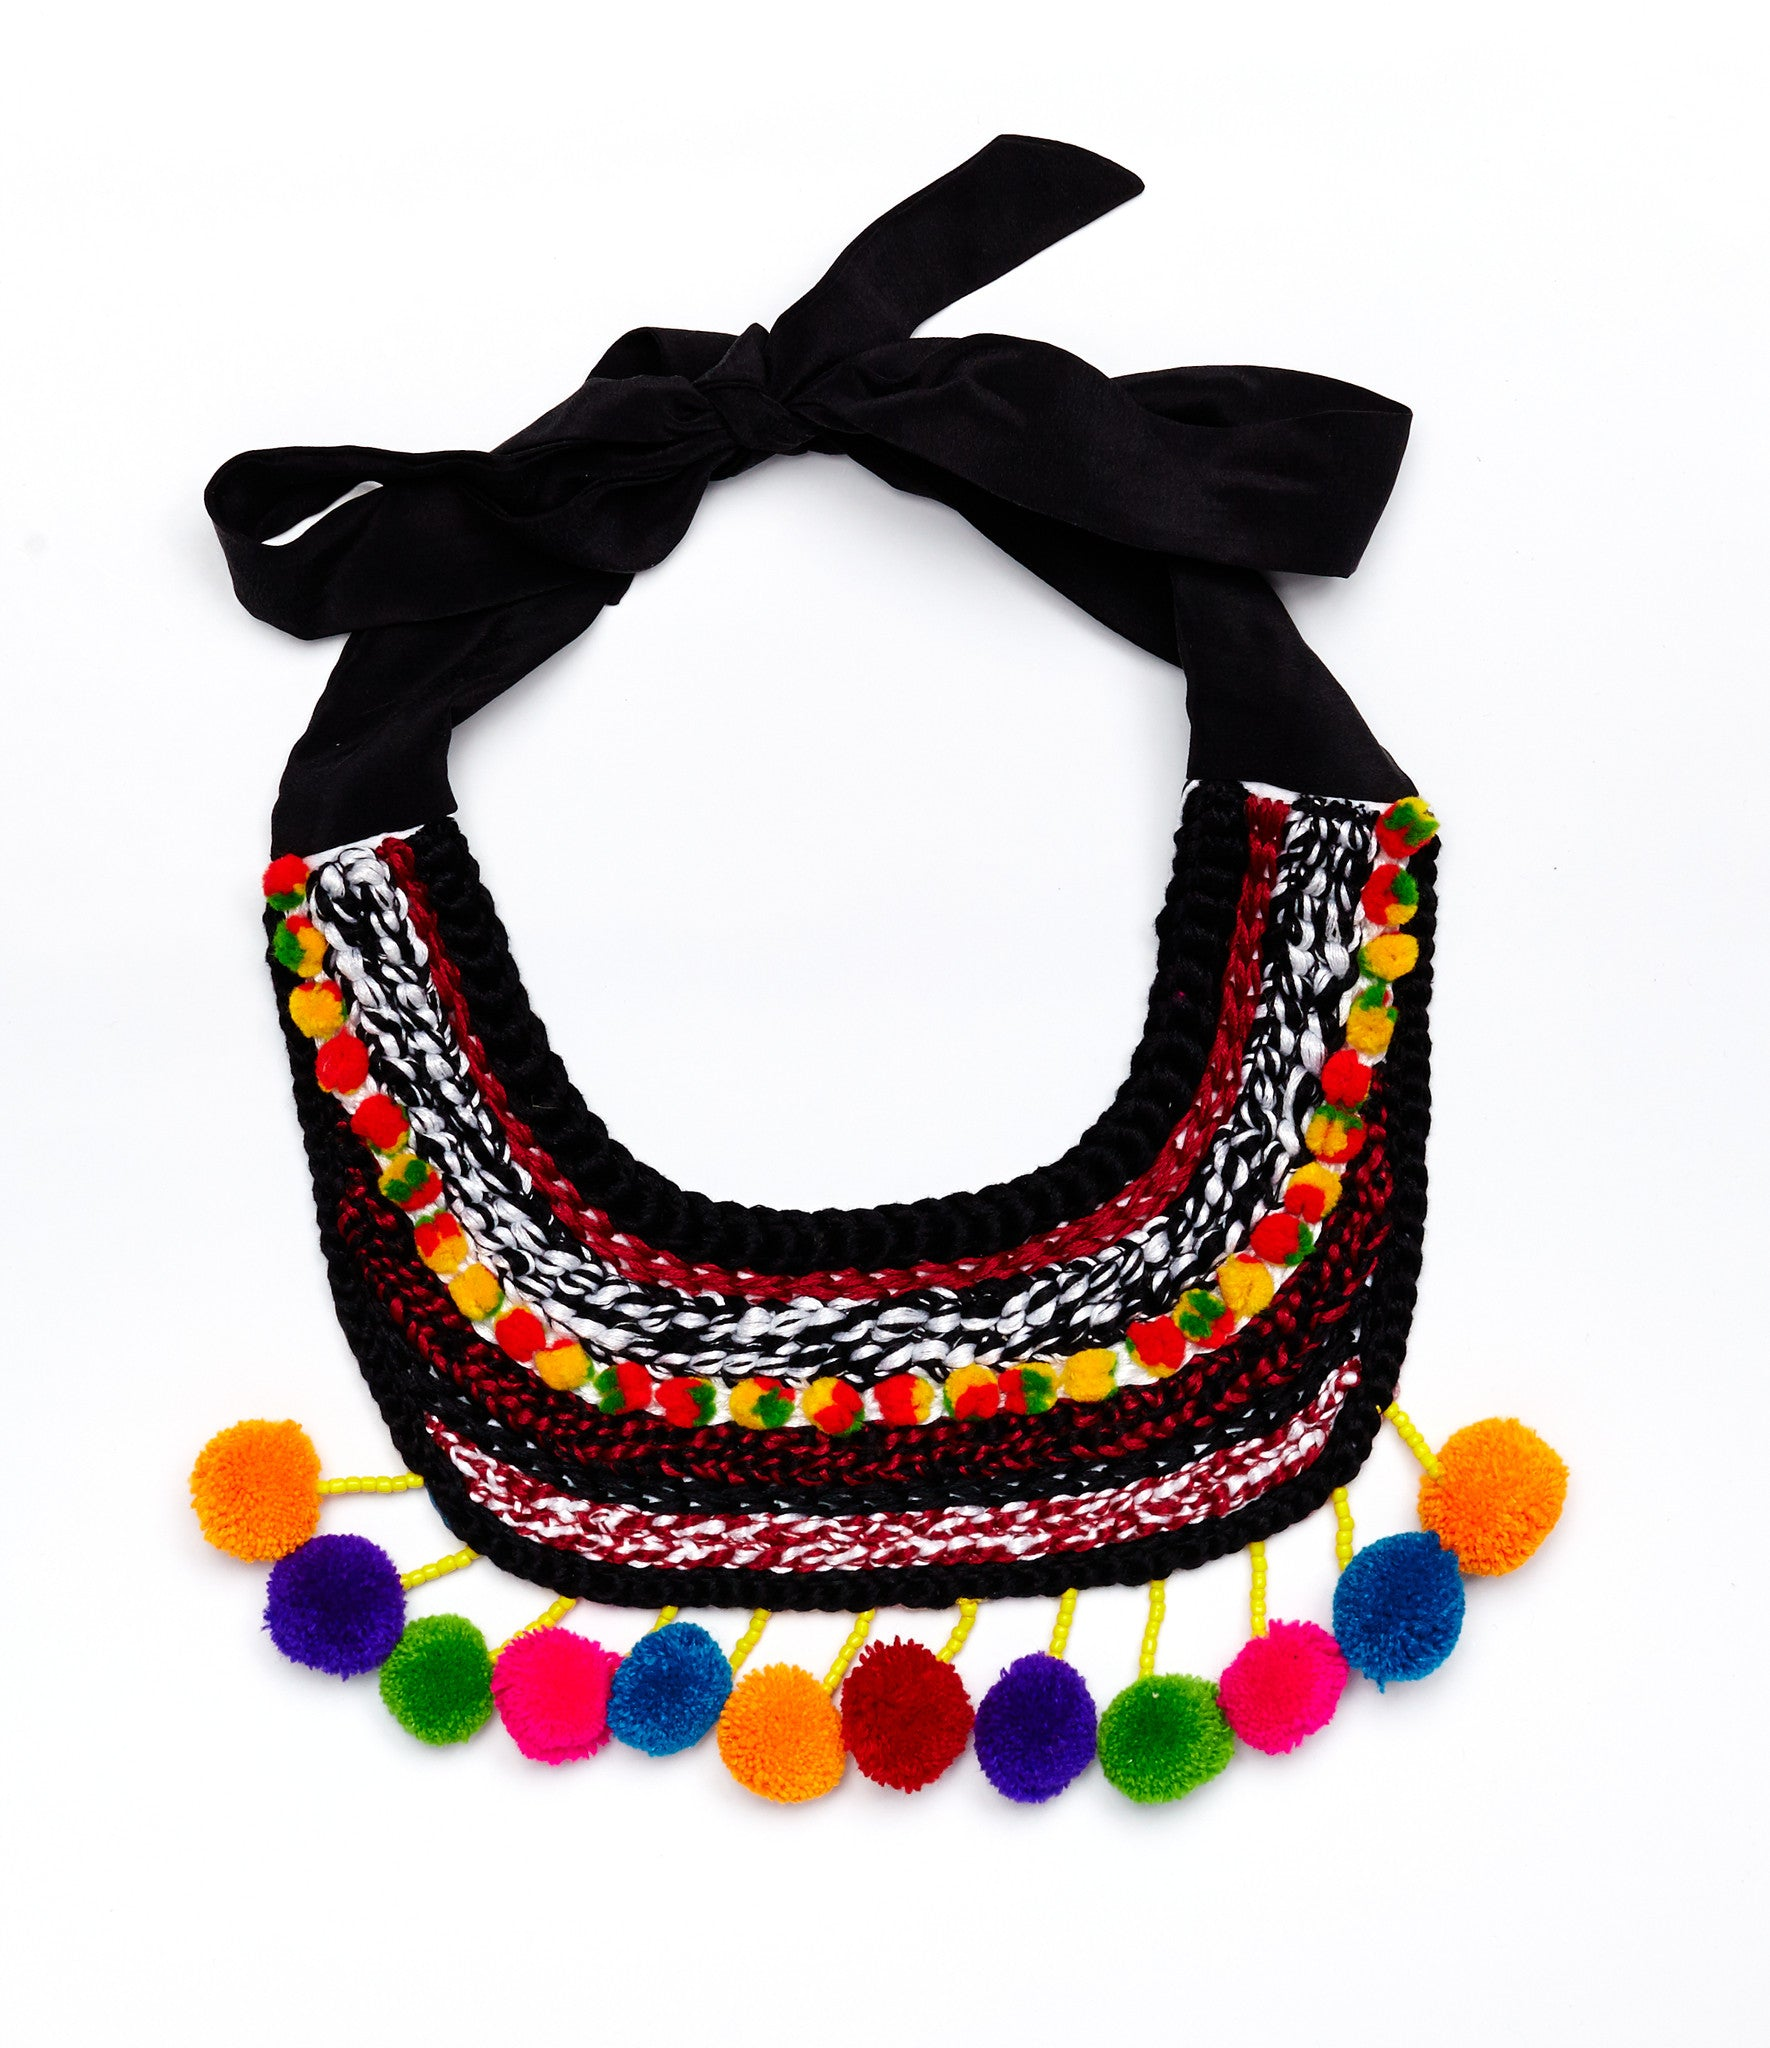 Pom-pom Embroidered Necklace